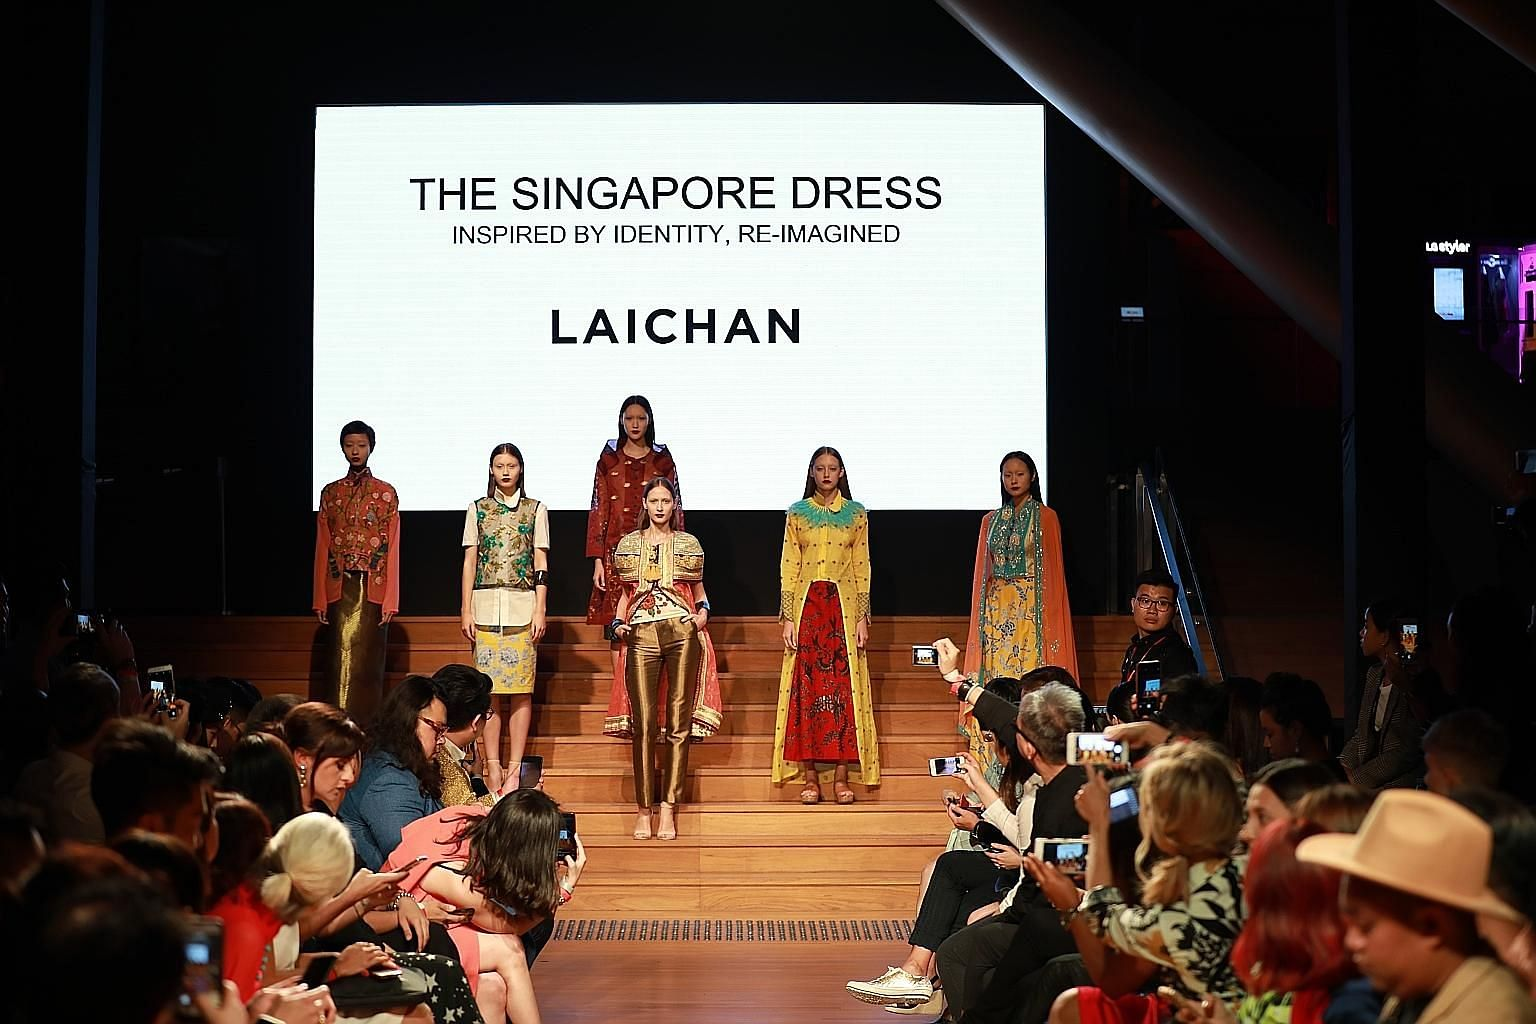 A Singapore Fashion Week show in 2017 featuring designer Lai Chan's collection.